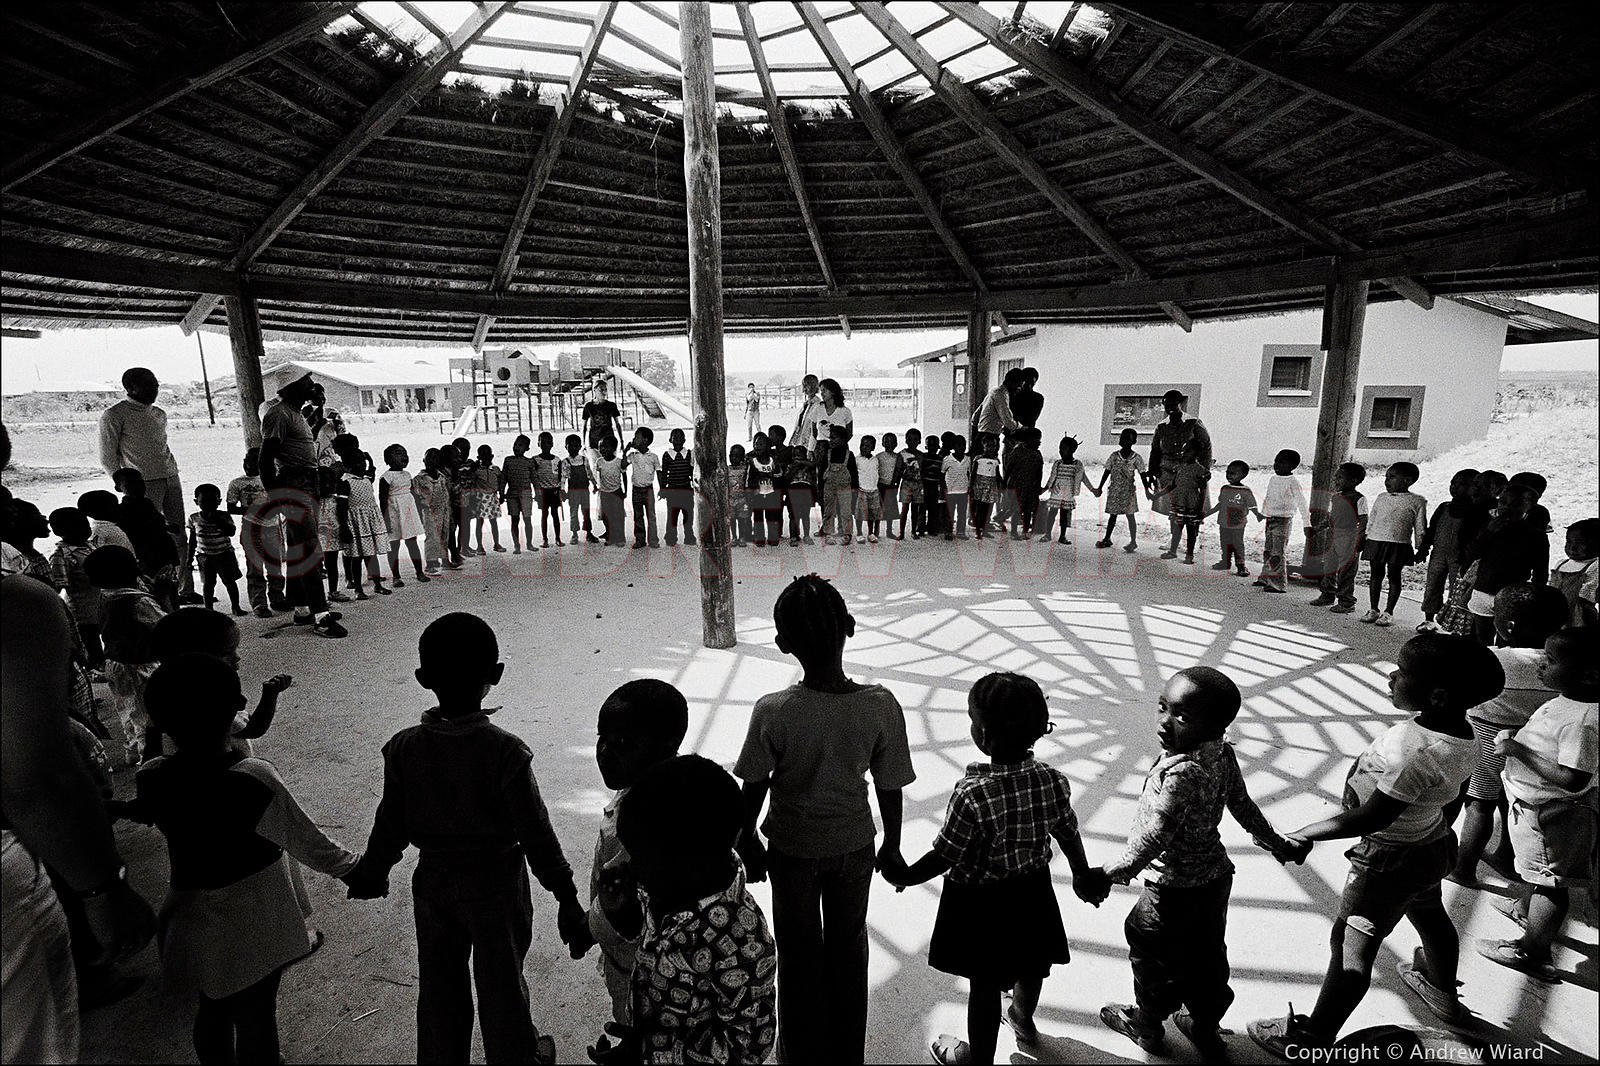 1985. Tanzania. School in an ANC guerrilla camp, heralding the dawn of a new South Africa where these children are now free a...